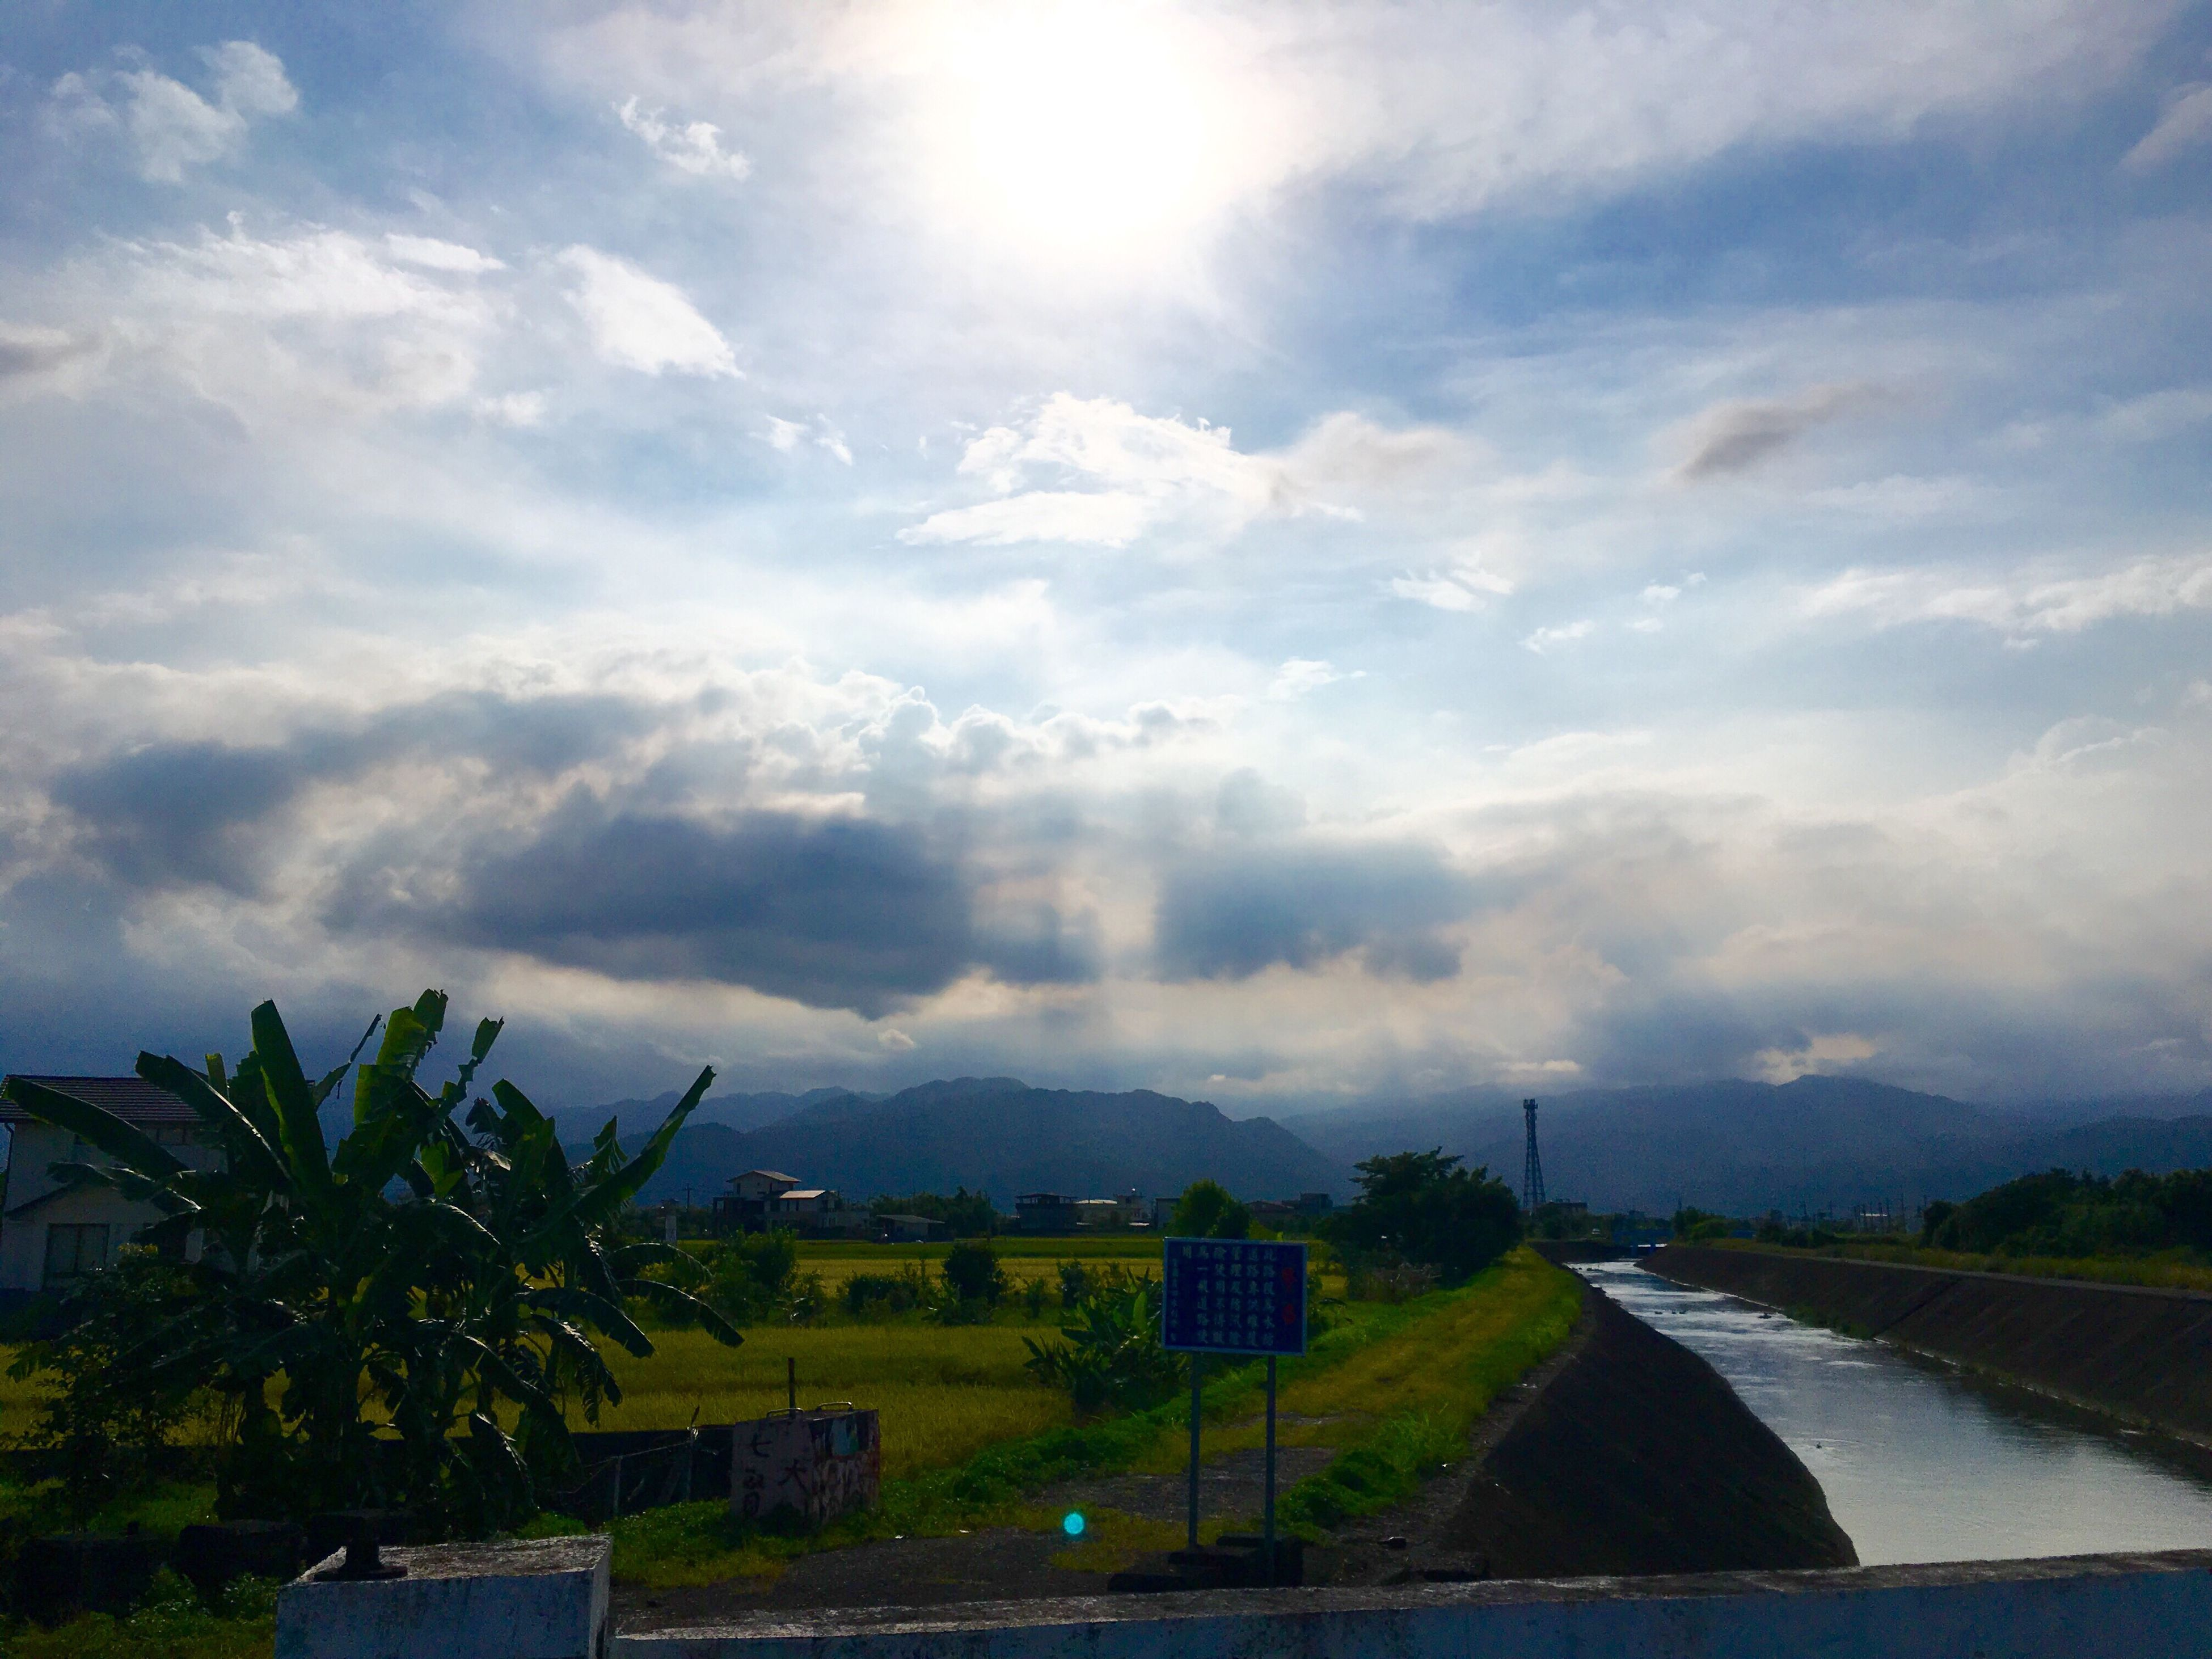 sky, cloud - sky, cloudy, landscape, tranquil scene, scenics, tranquility, beauty in nature, nature, cloud, rural scene, outdoors, no people, weather, green color, day, grass, idyllic, growth, mountain, sunbeam, overcast, non-urban scene, horizon over land, sun, remote